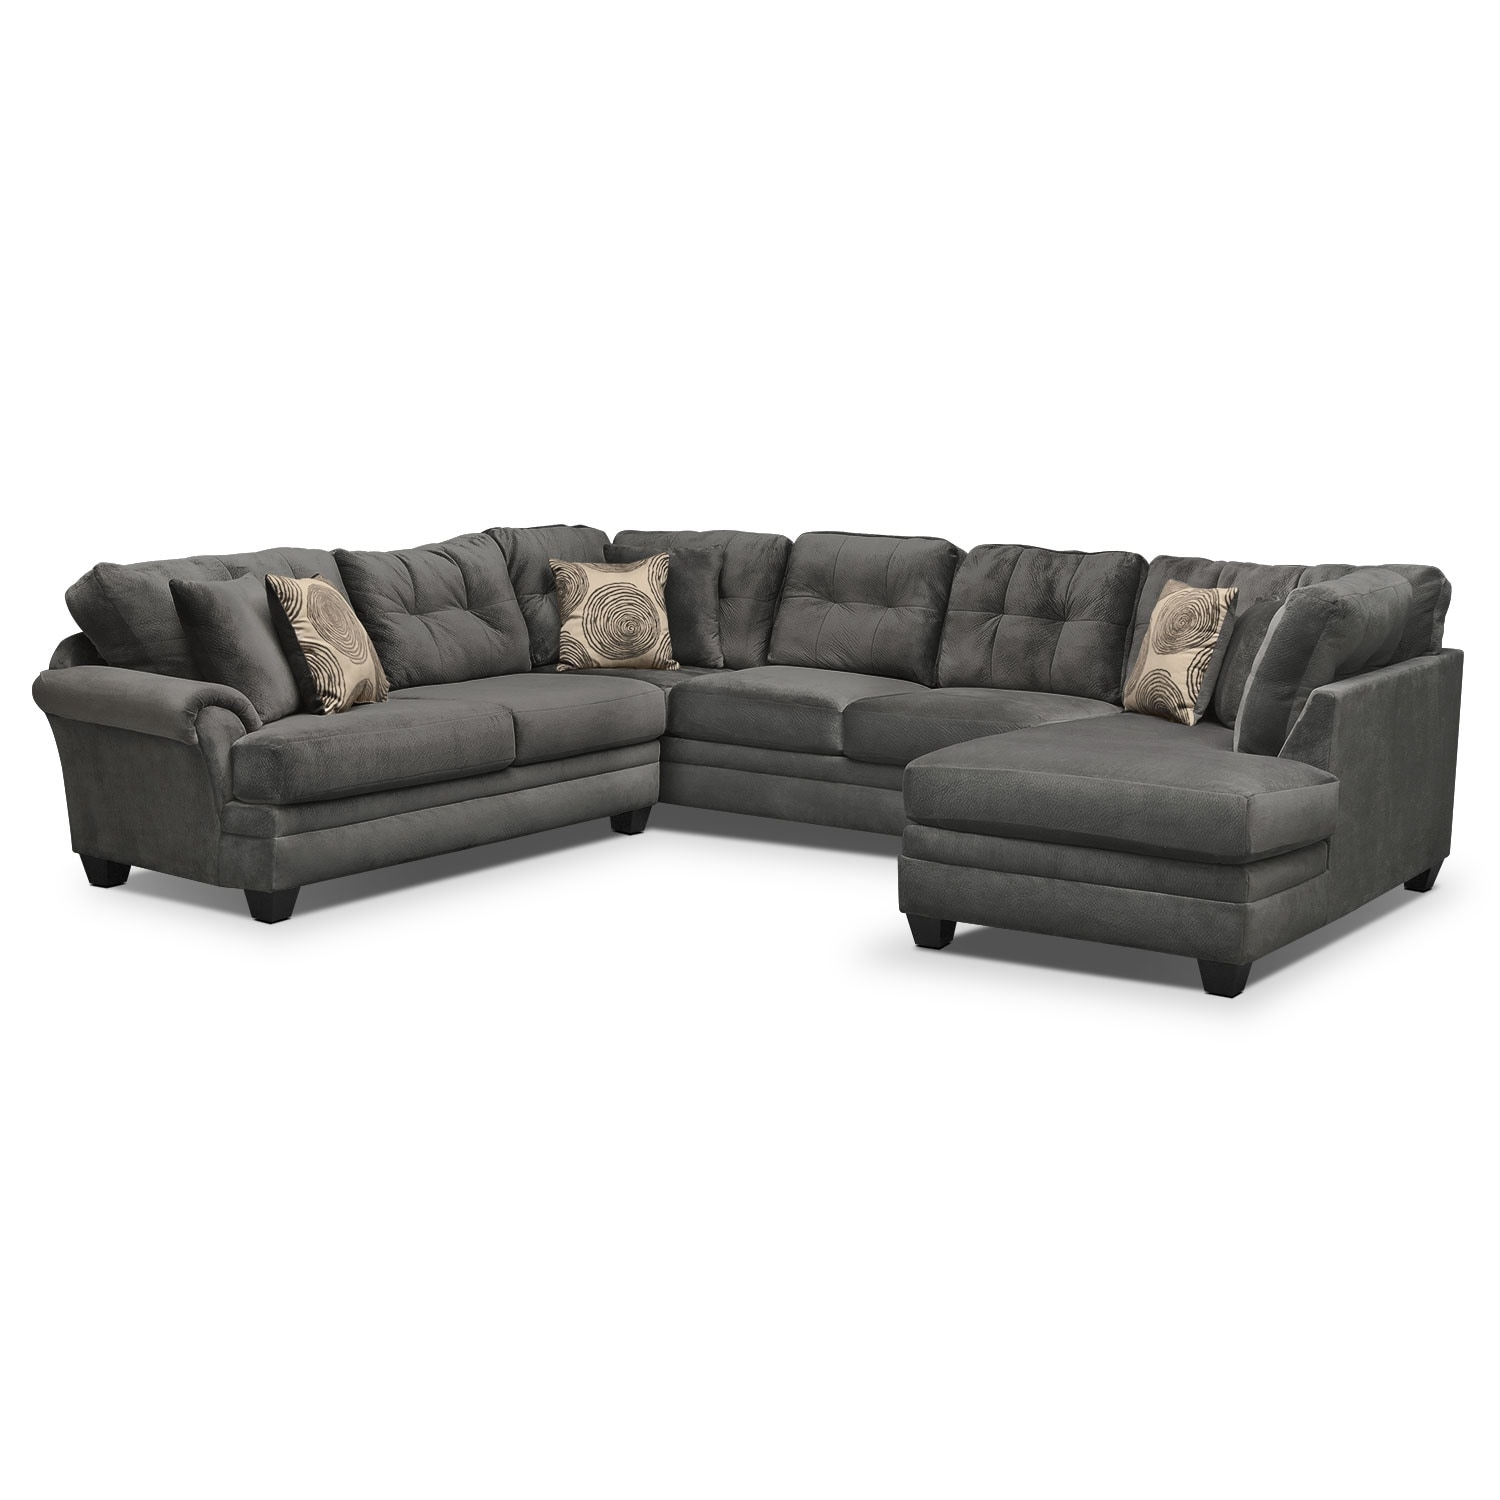 Cordelle 3 piece sectional gray value city furniture for Sectional sofa set up